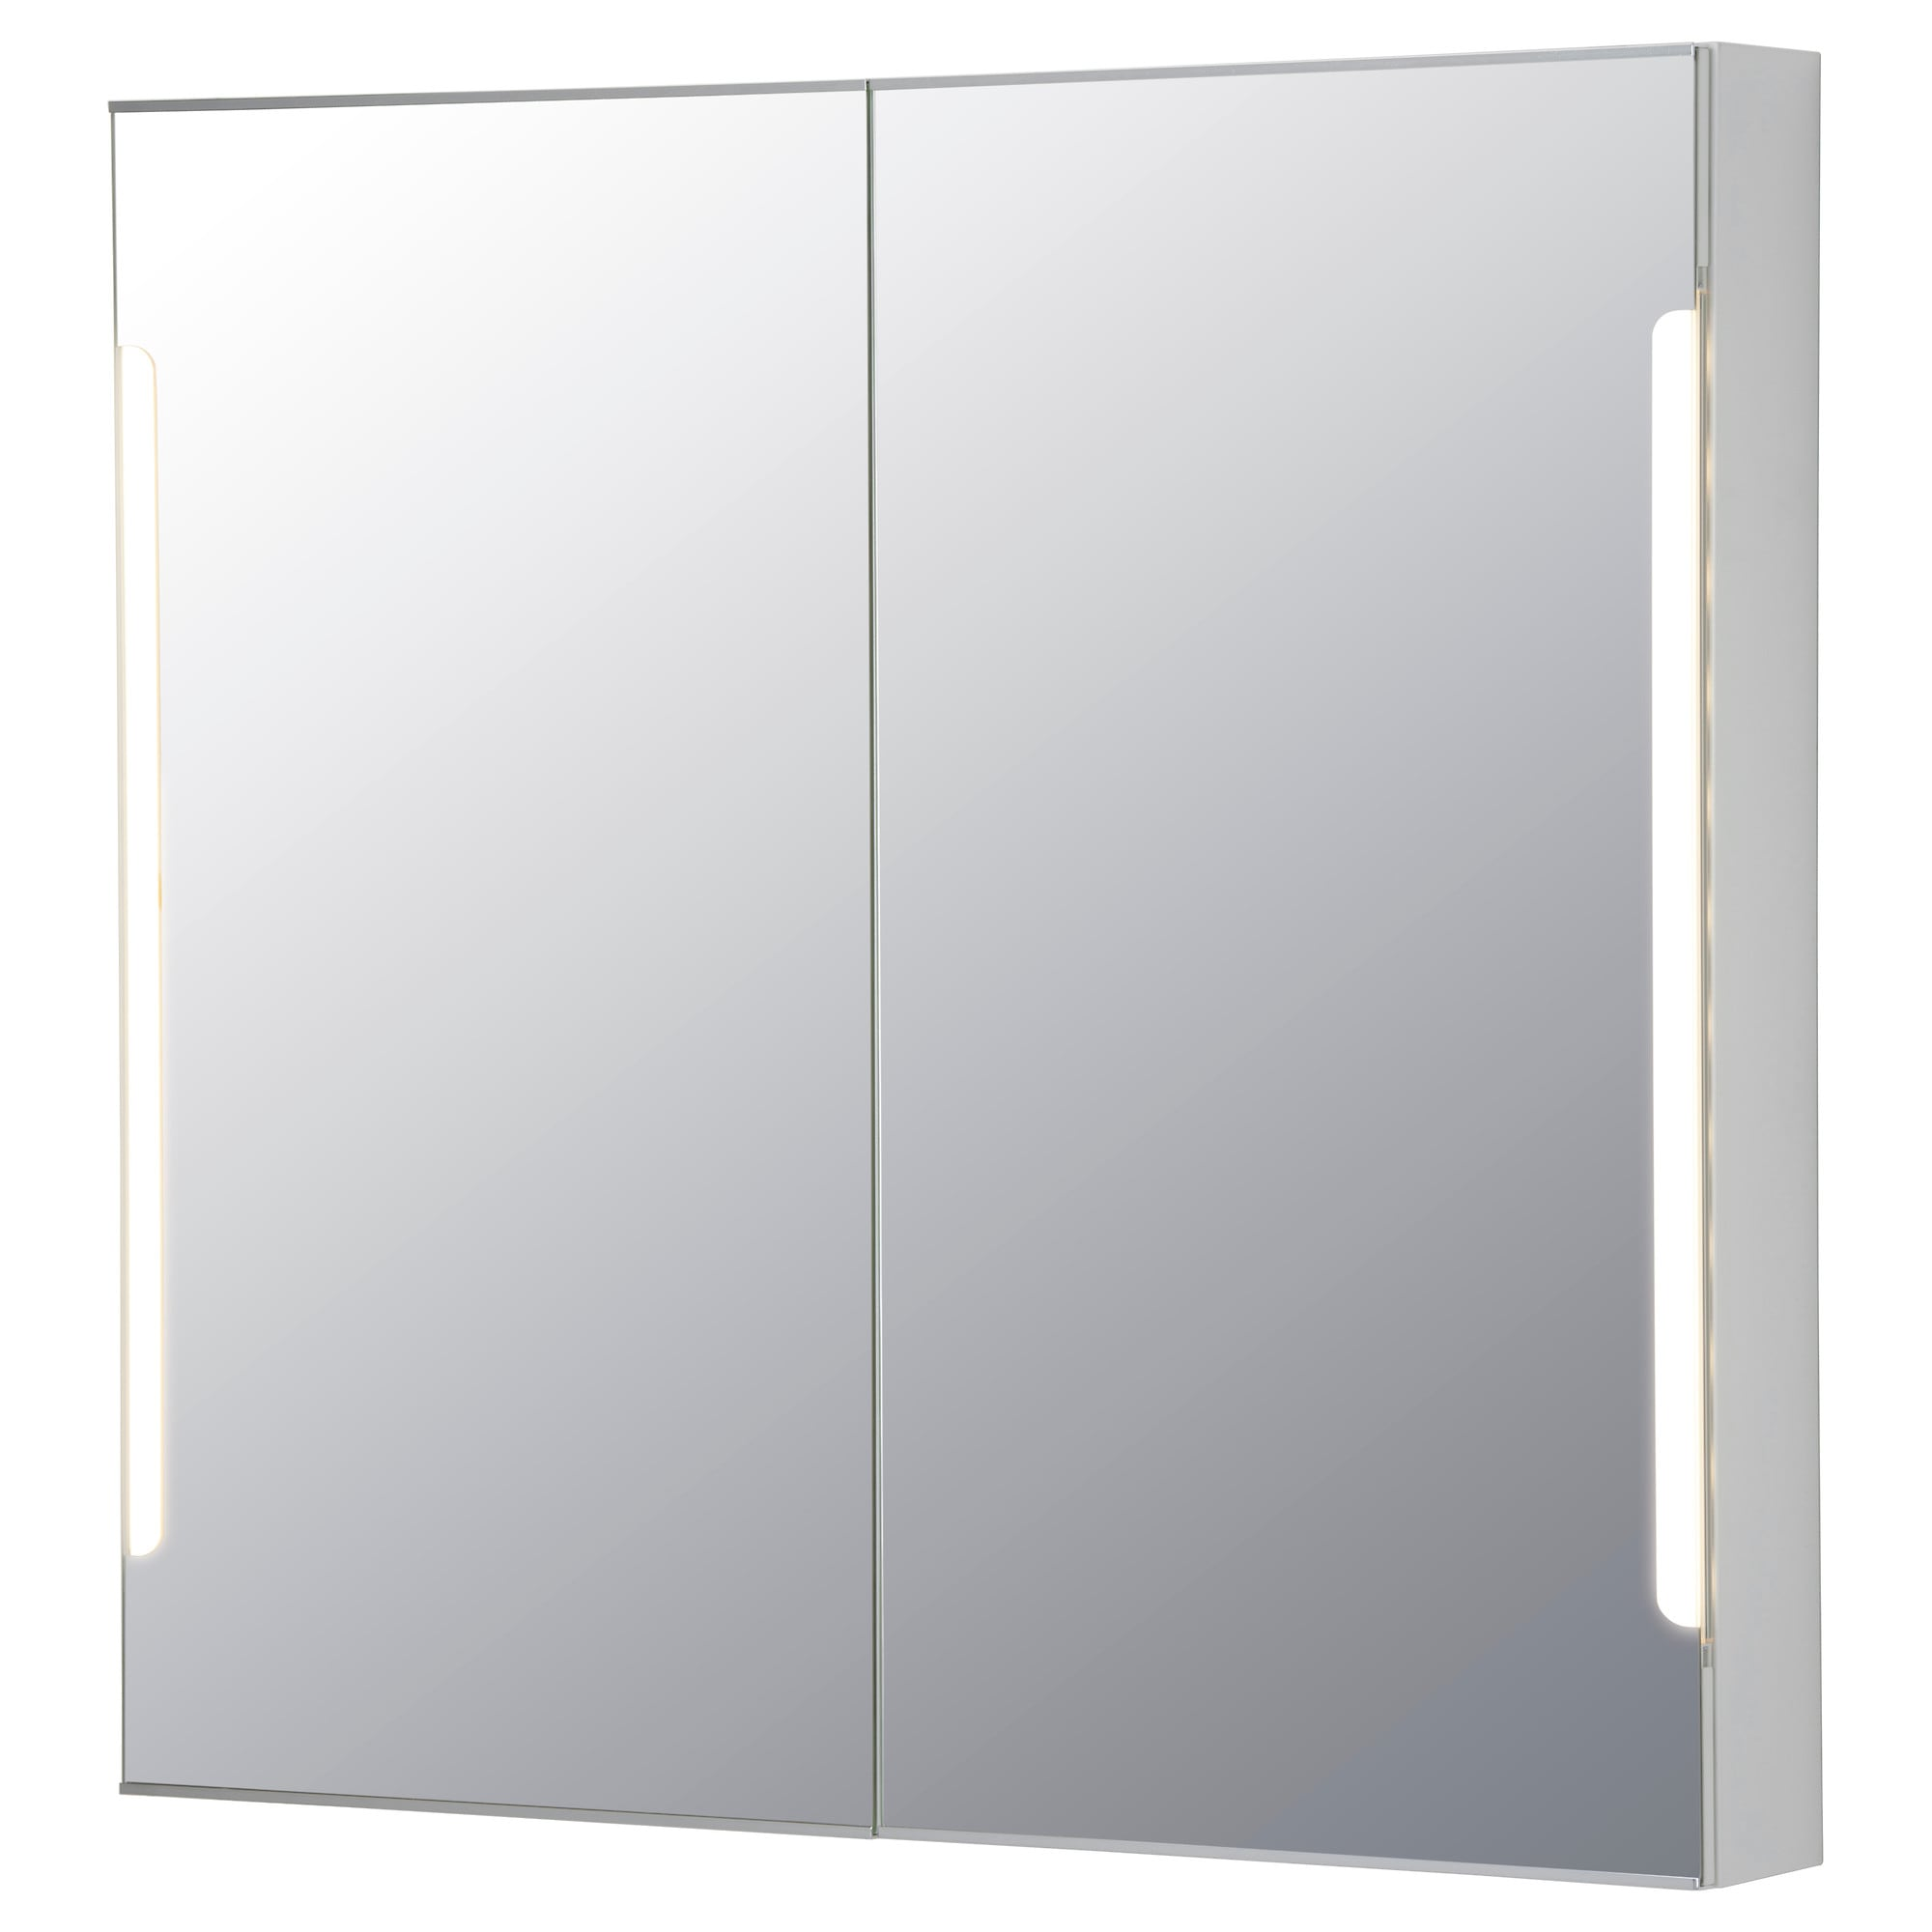 Bathroom mirror cabinets ikea - Bathroom Mirror Cabinets Ikea 3